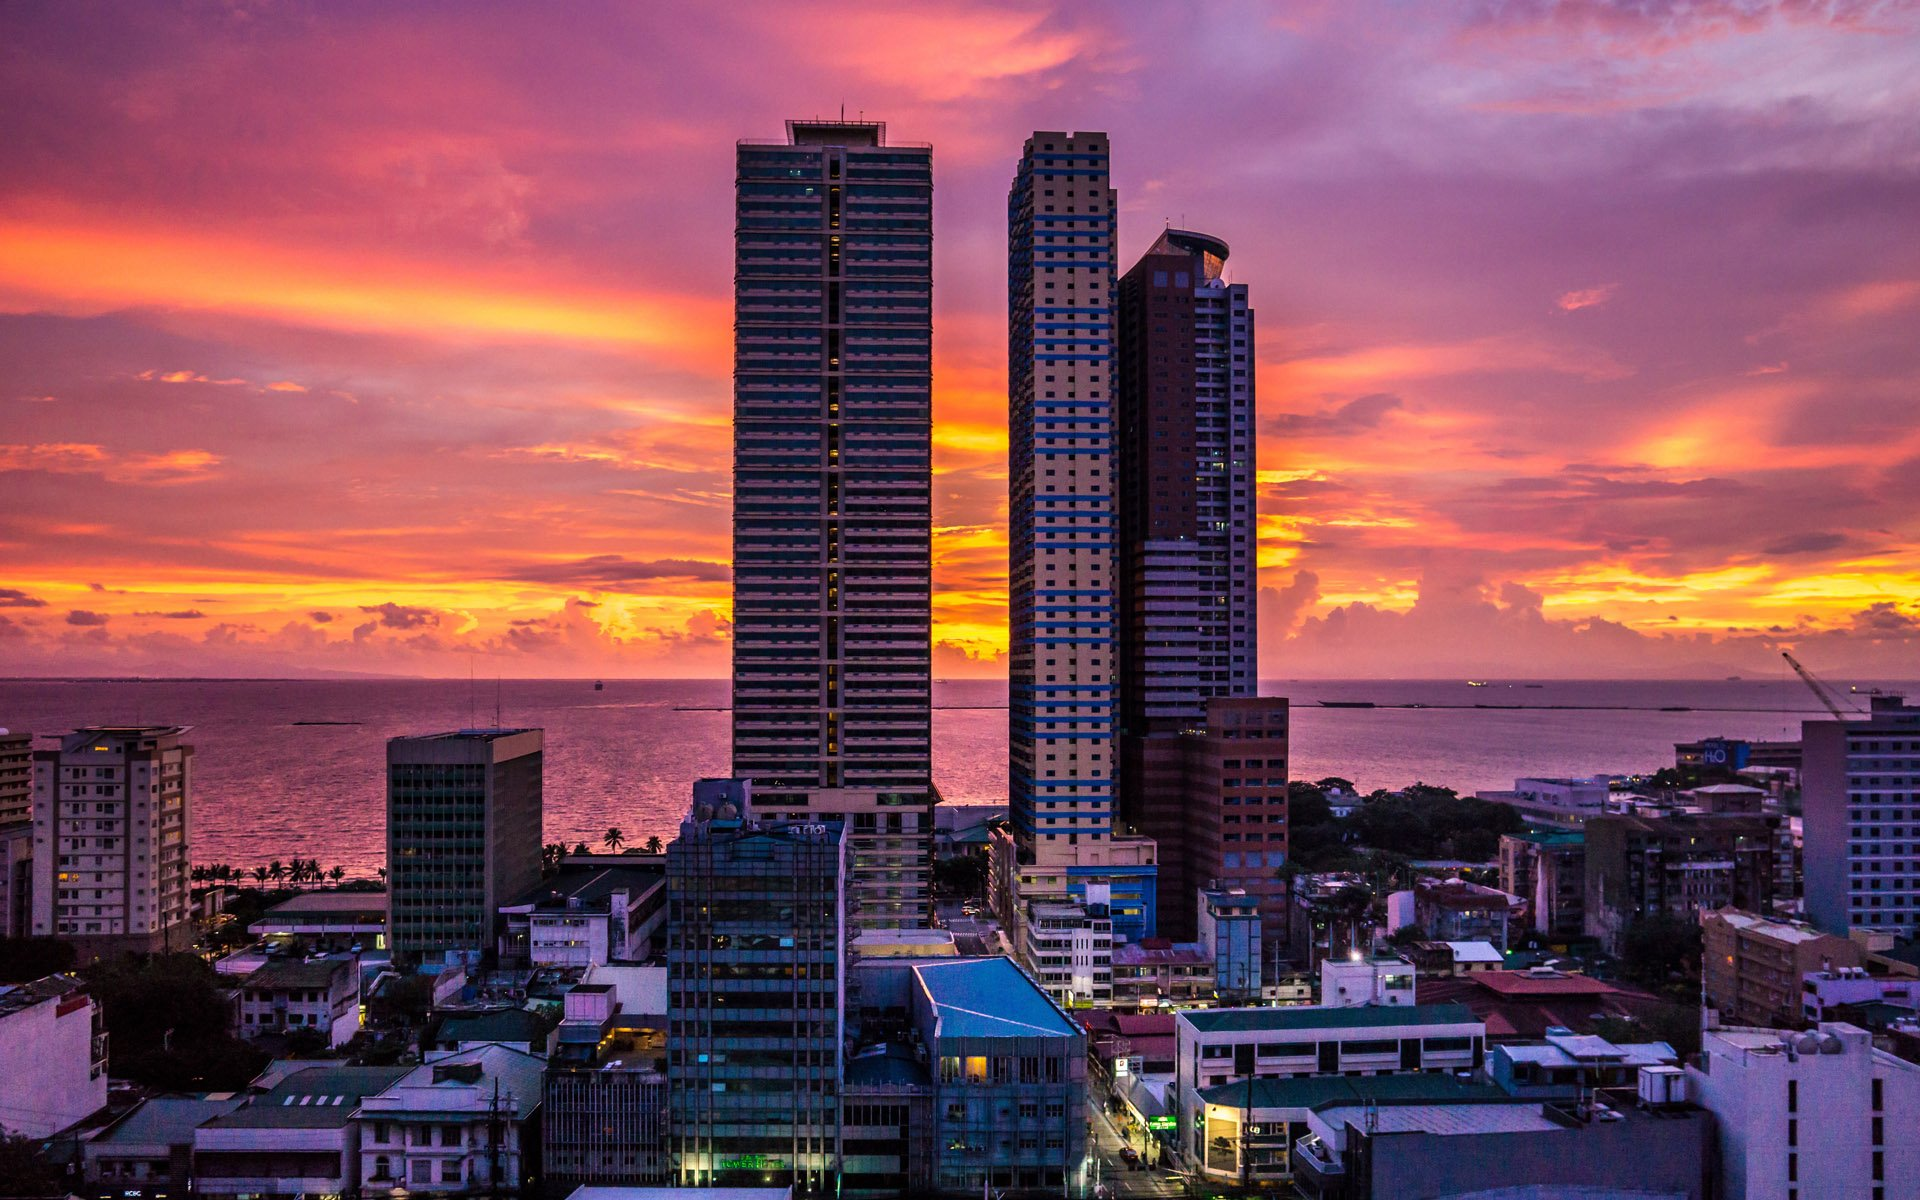 Philippines Joins the Ranks of Countries Regulating ICOs